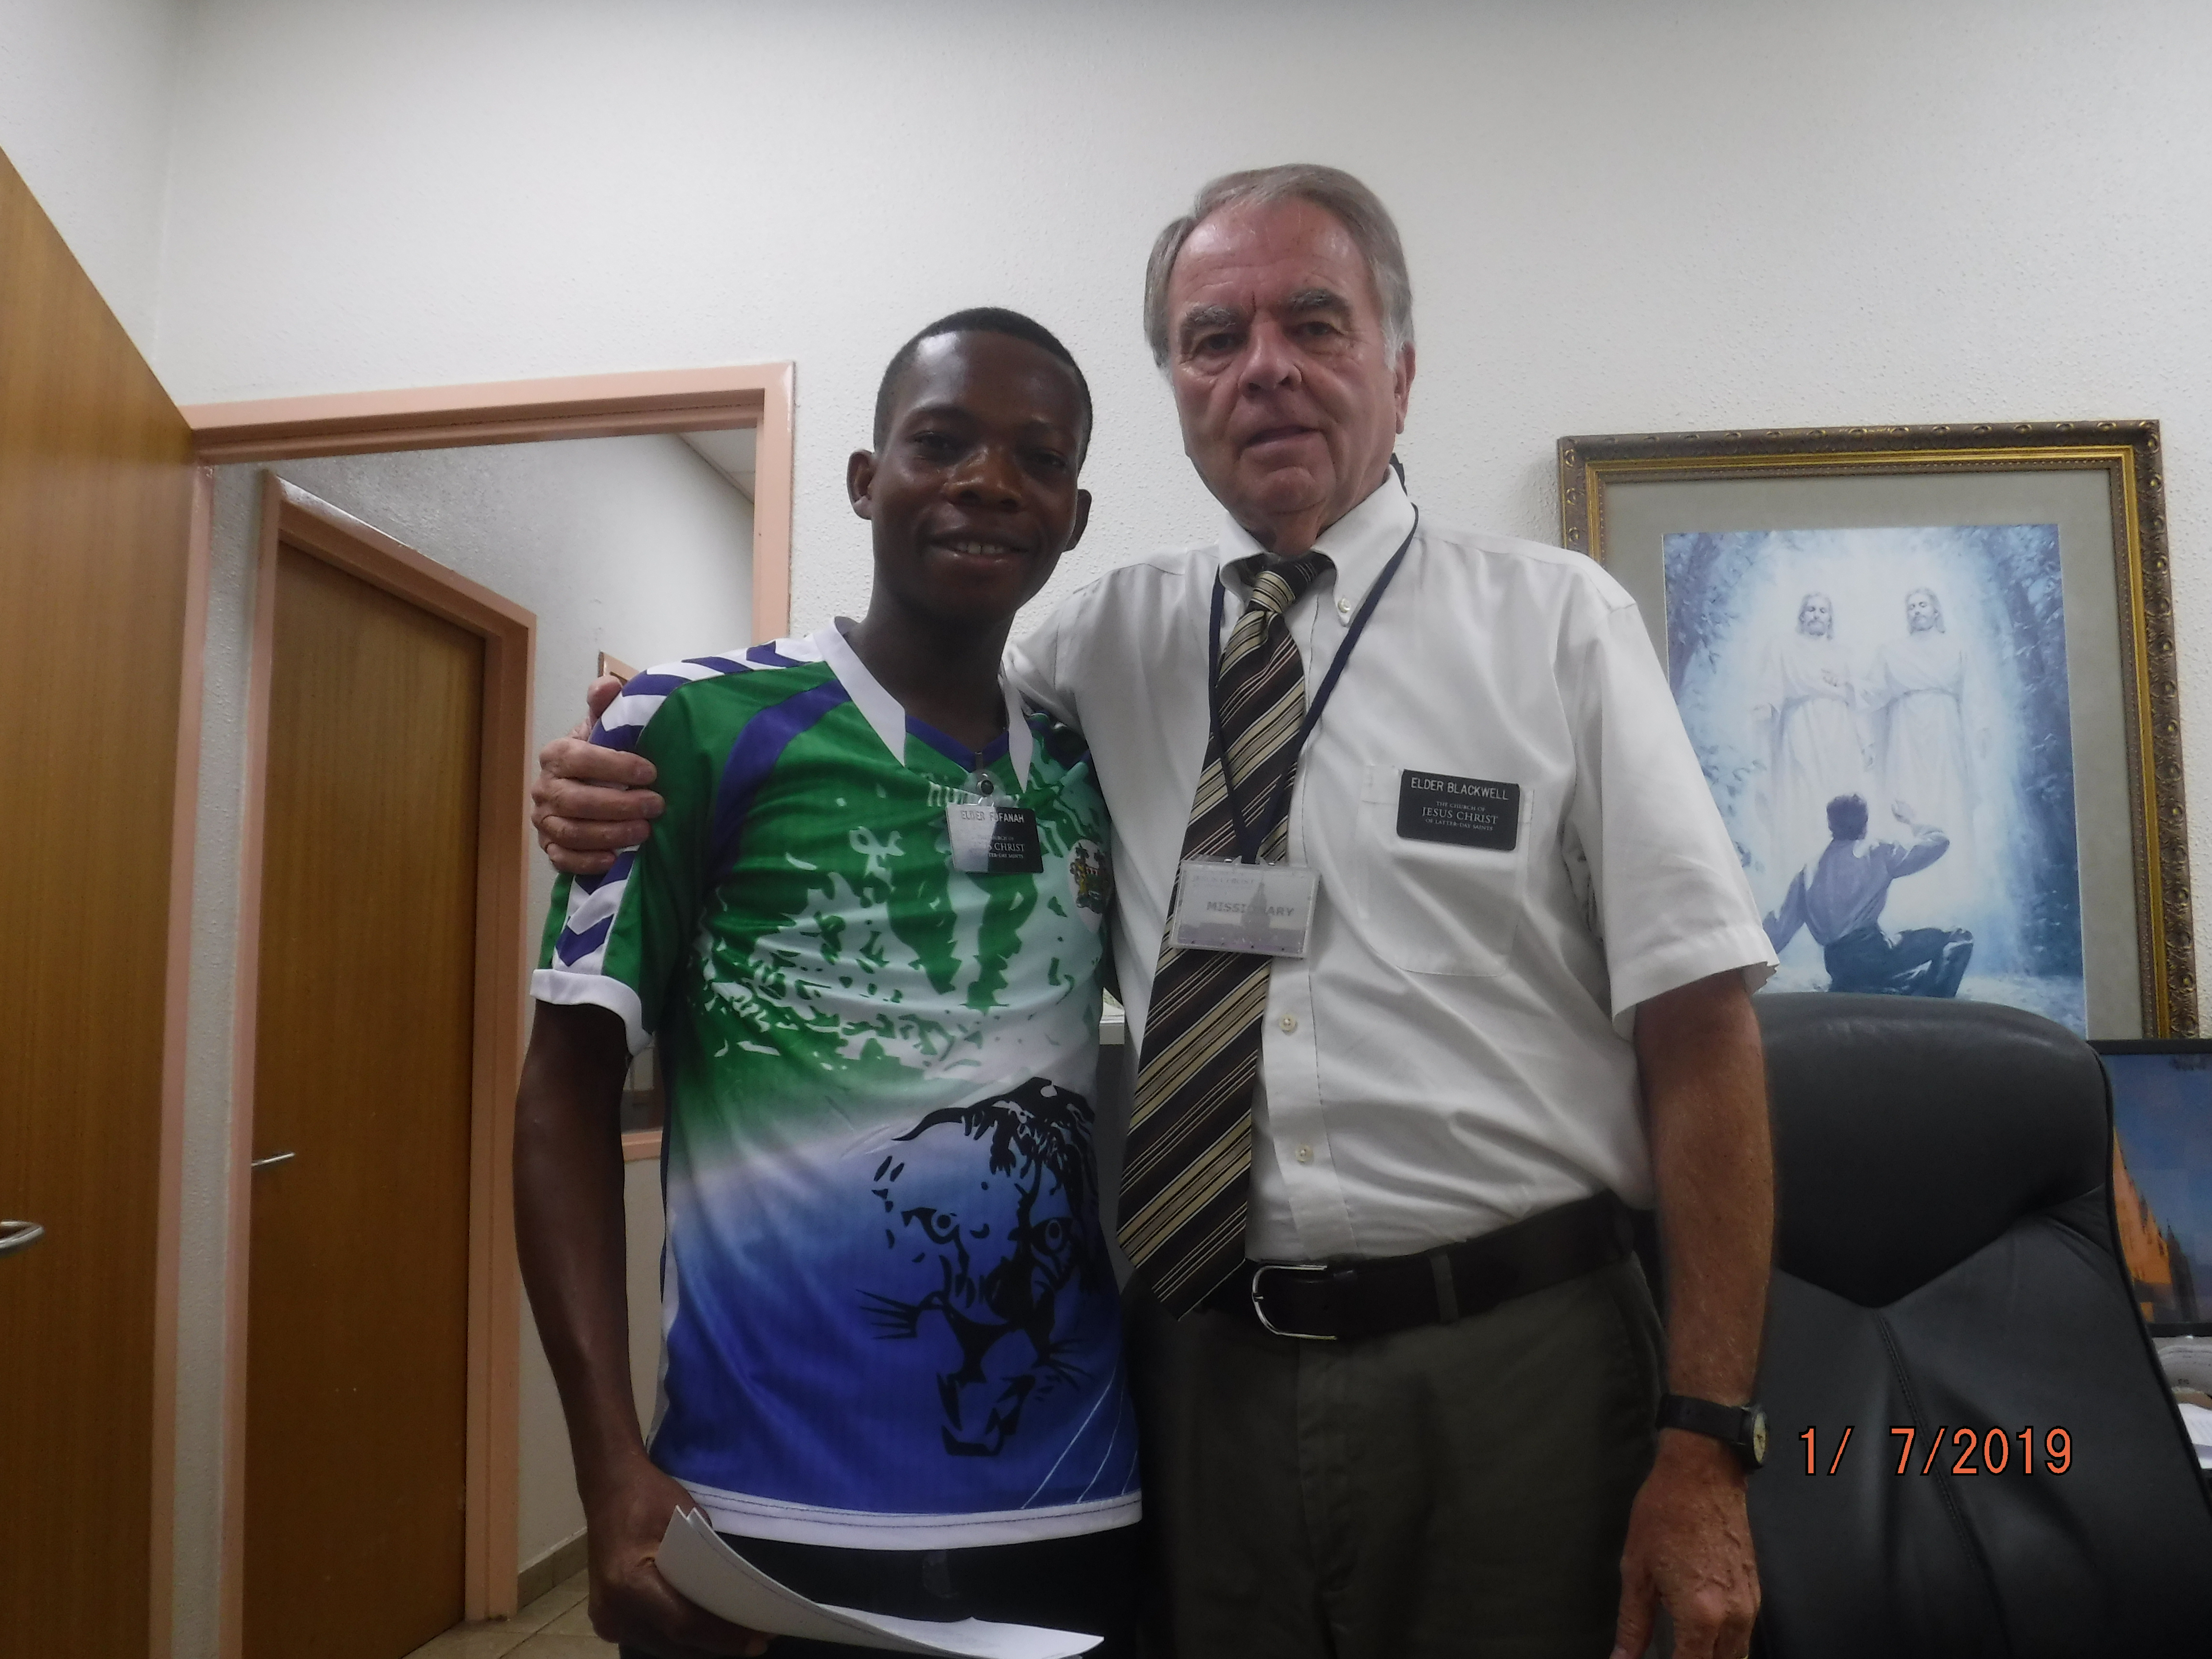 After his career as a mental health therapist in Utah, Elder David Blackwell used his professional experience to serve as the Area Mental Health Advisor in the Europe East Area and the Africa West Area.